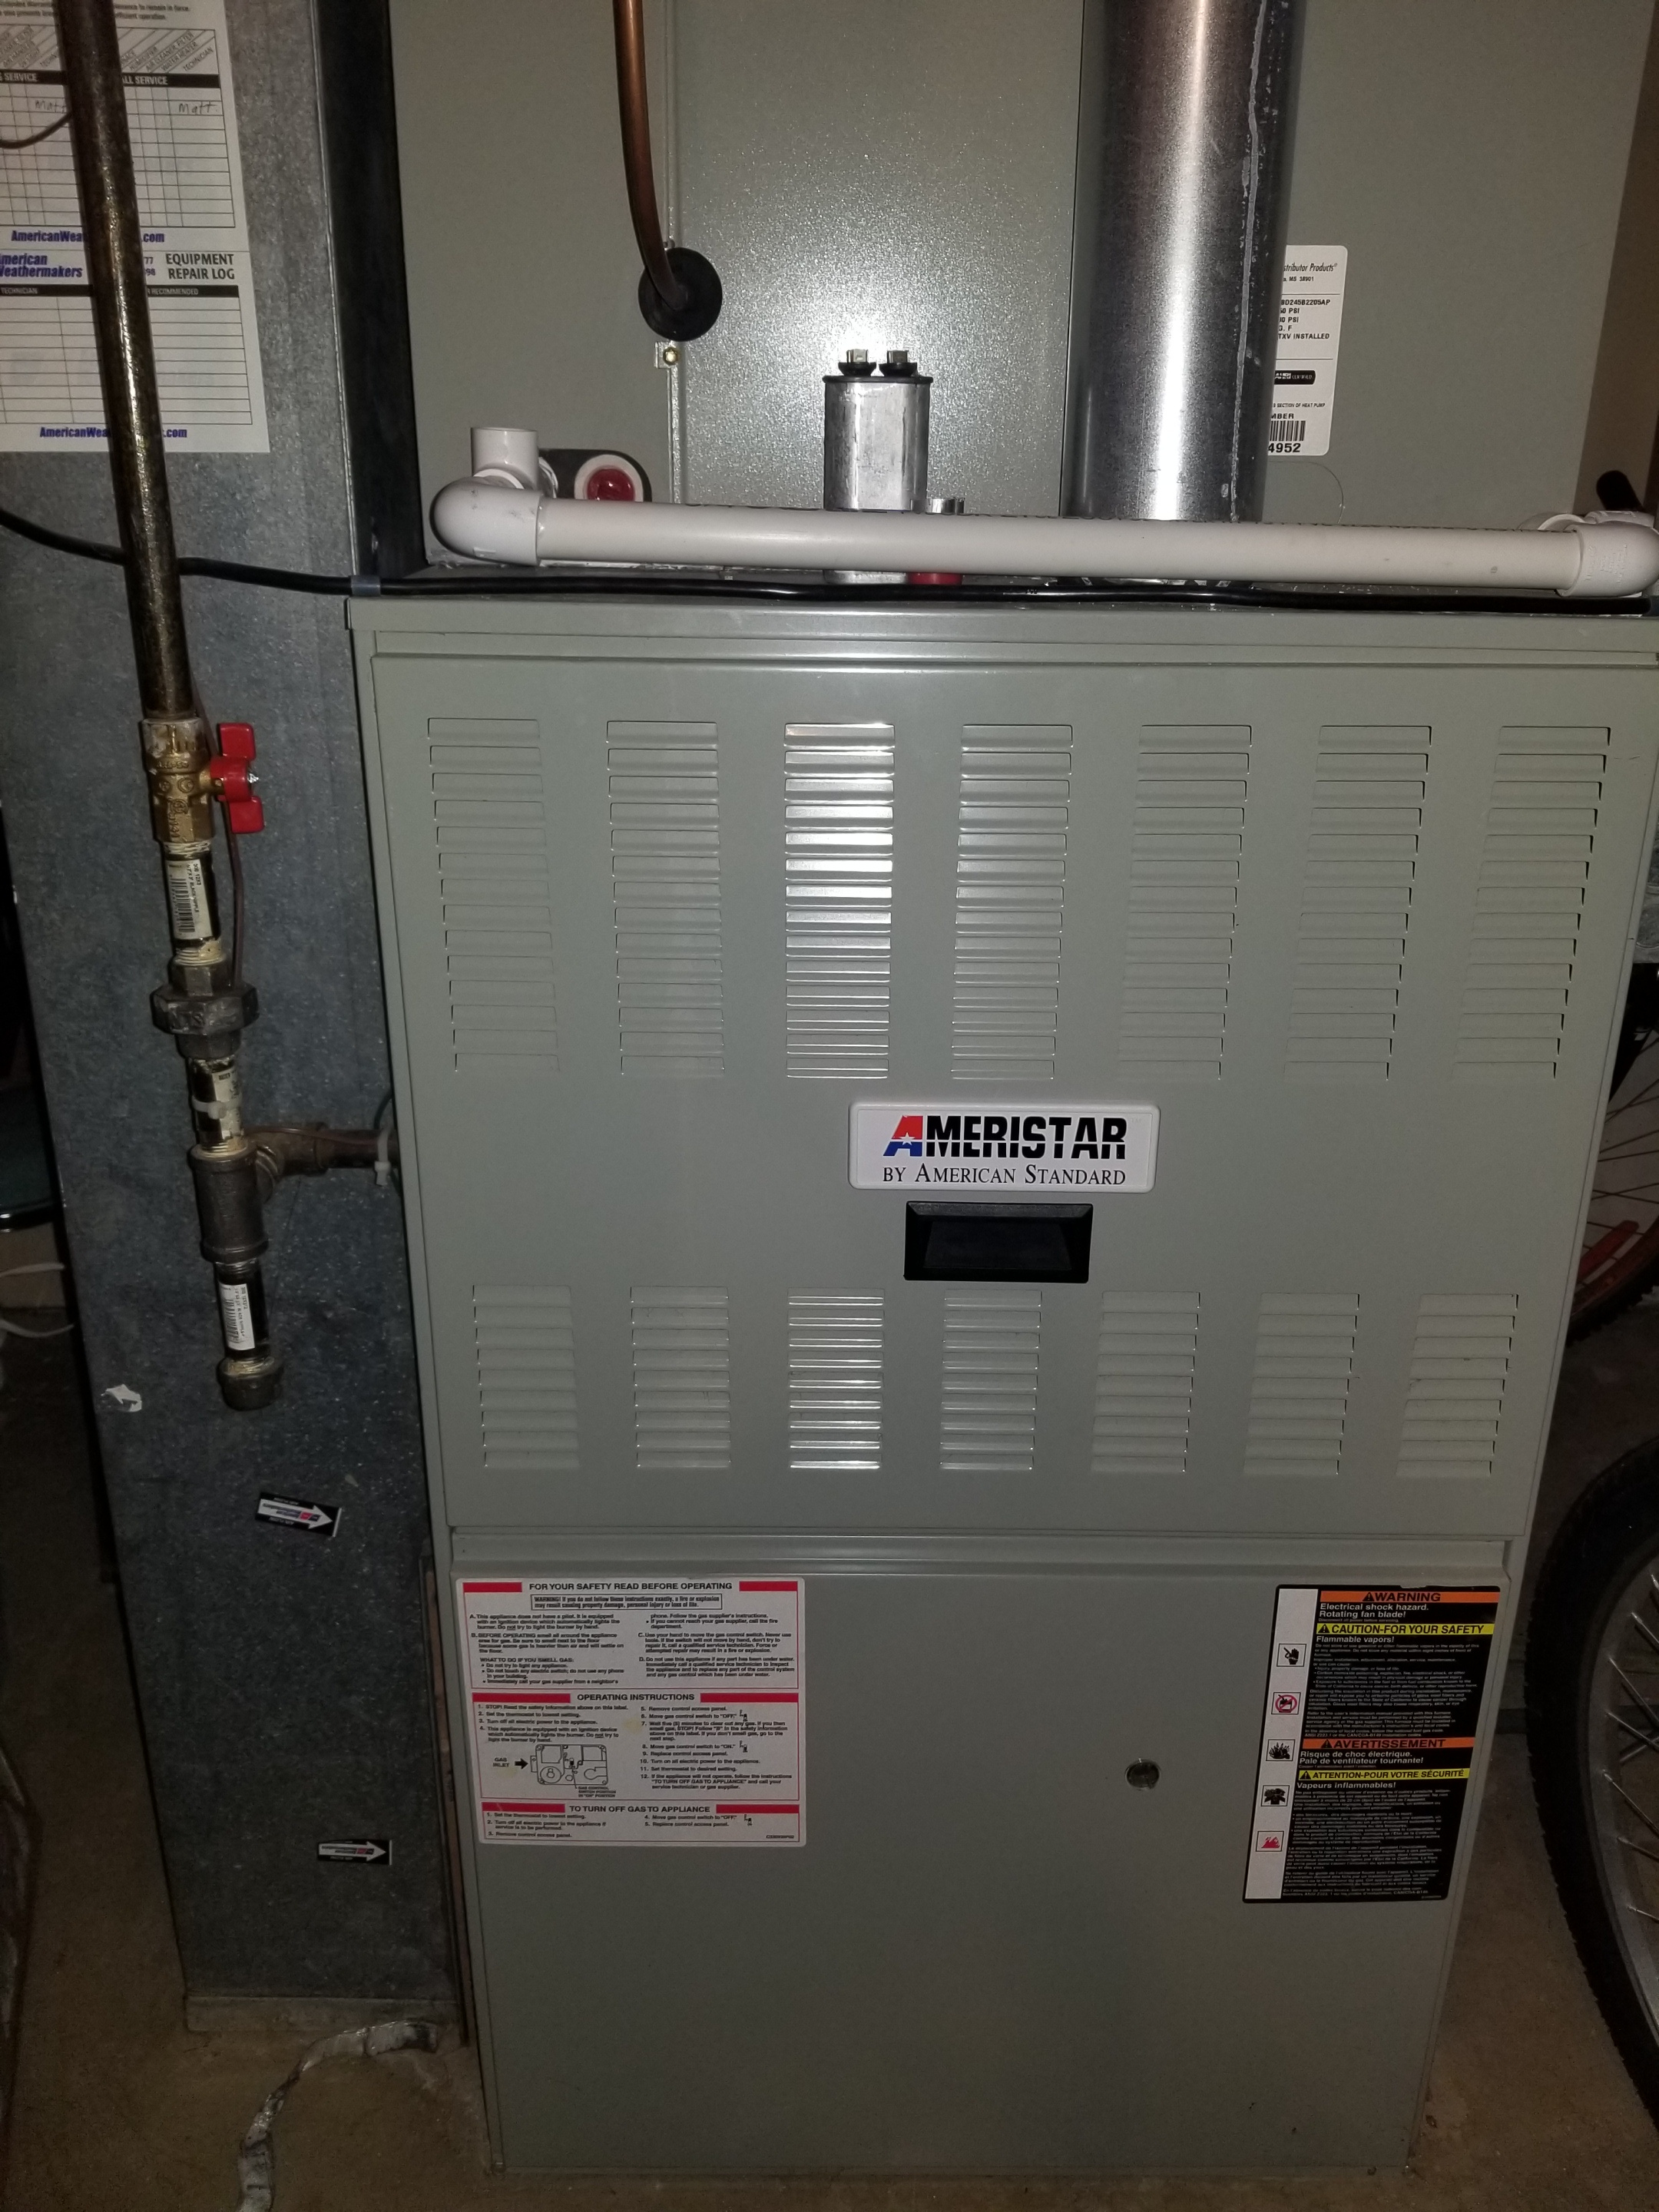 Performed annual maintenance on the American Standard furnace and made adjustments to improve the overall efficiency and life expectancy of the equipment